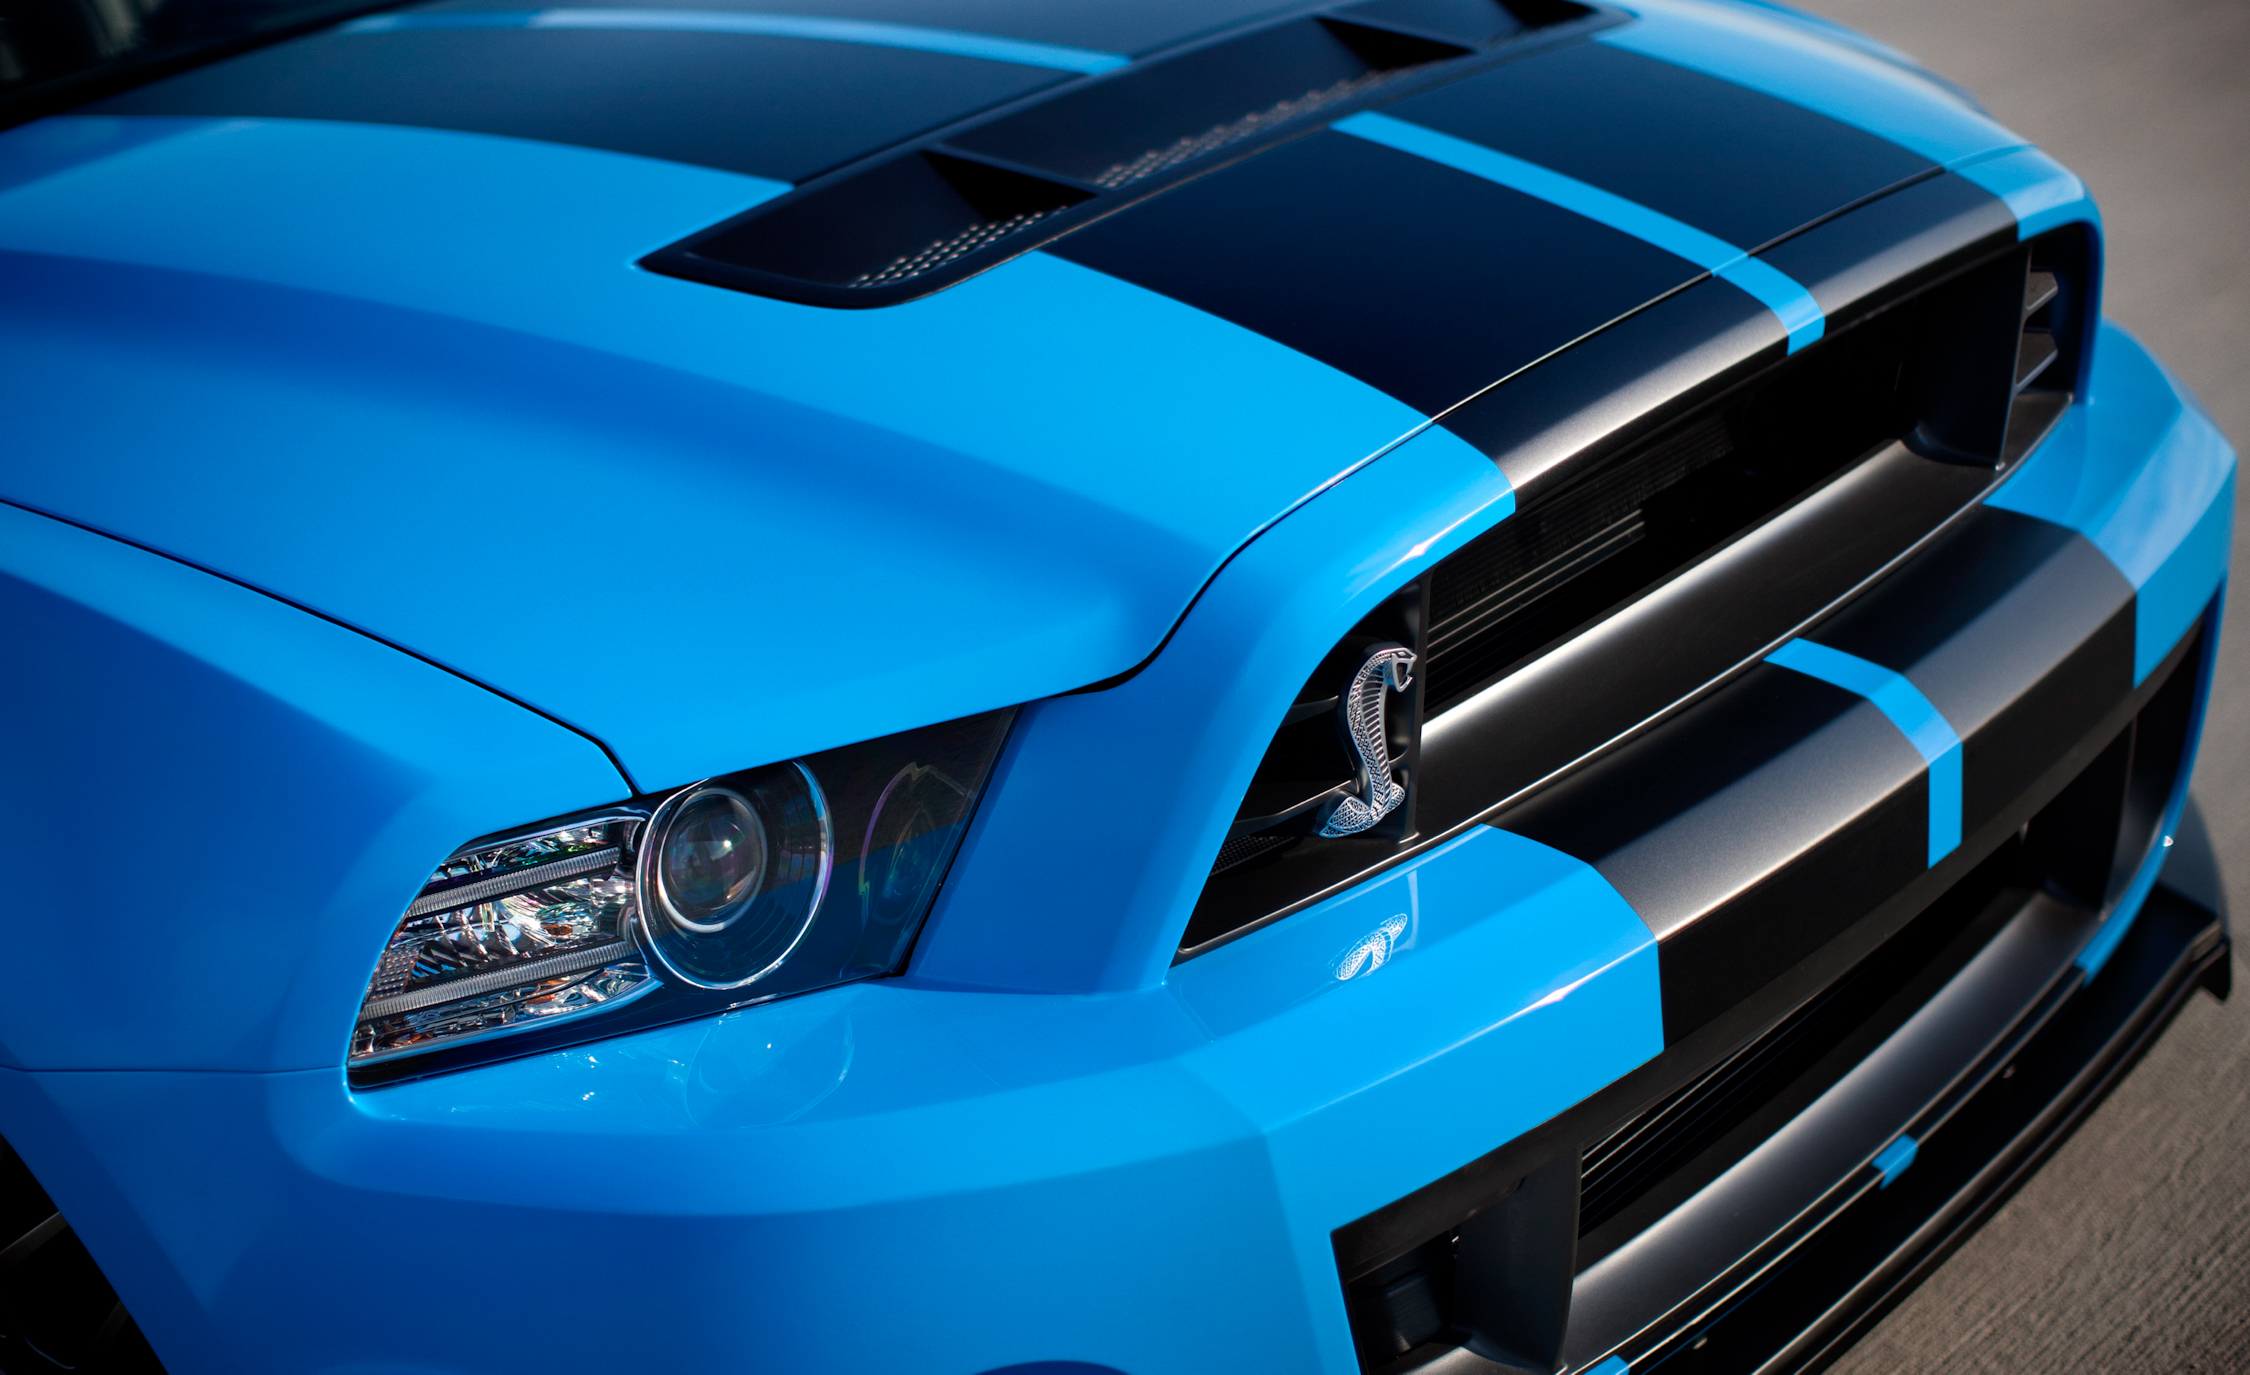 2013 Ford Mustang Shelby GT500 Blue Exterior View Grille And Front Bumper (Photo 5 of 47)